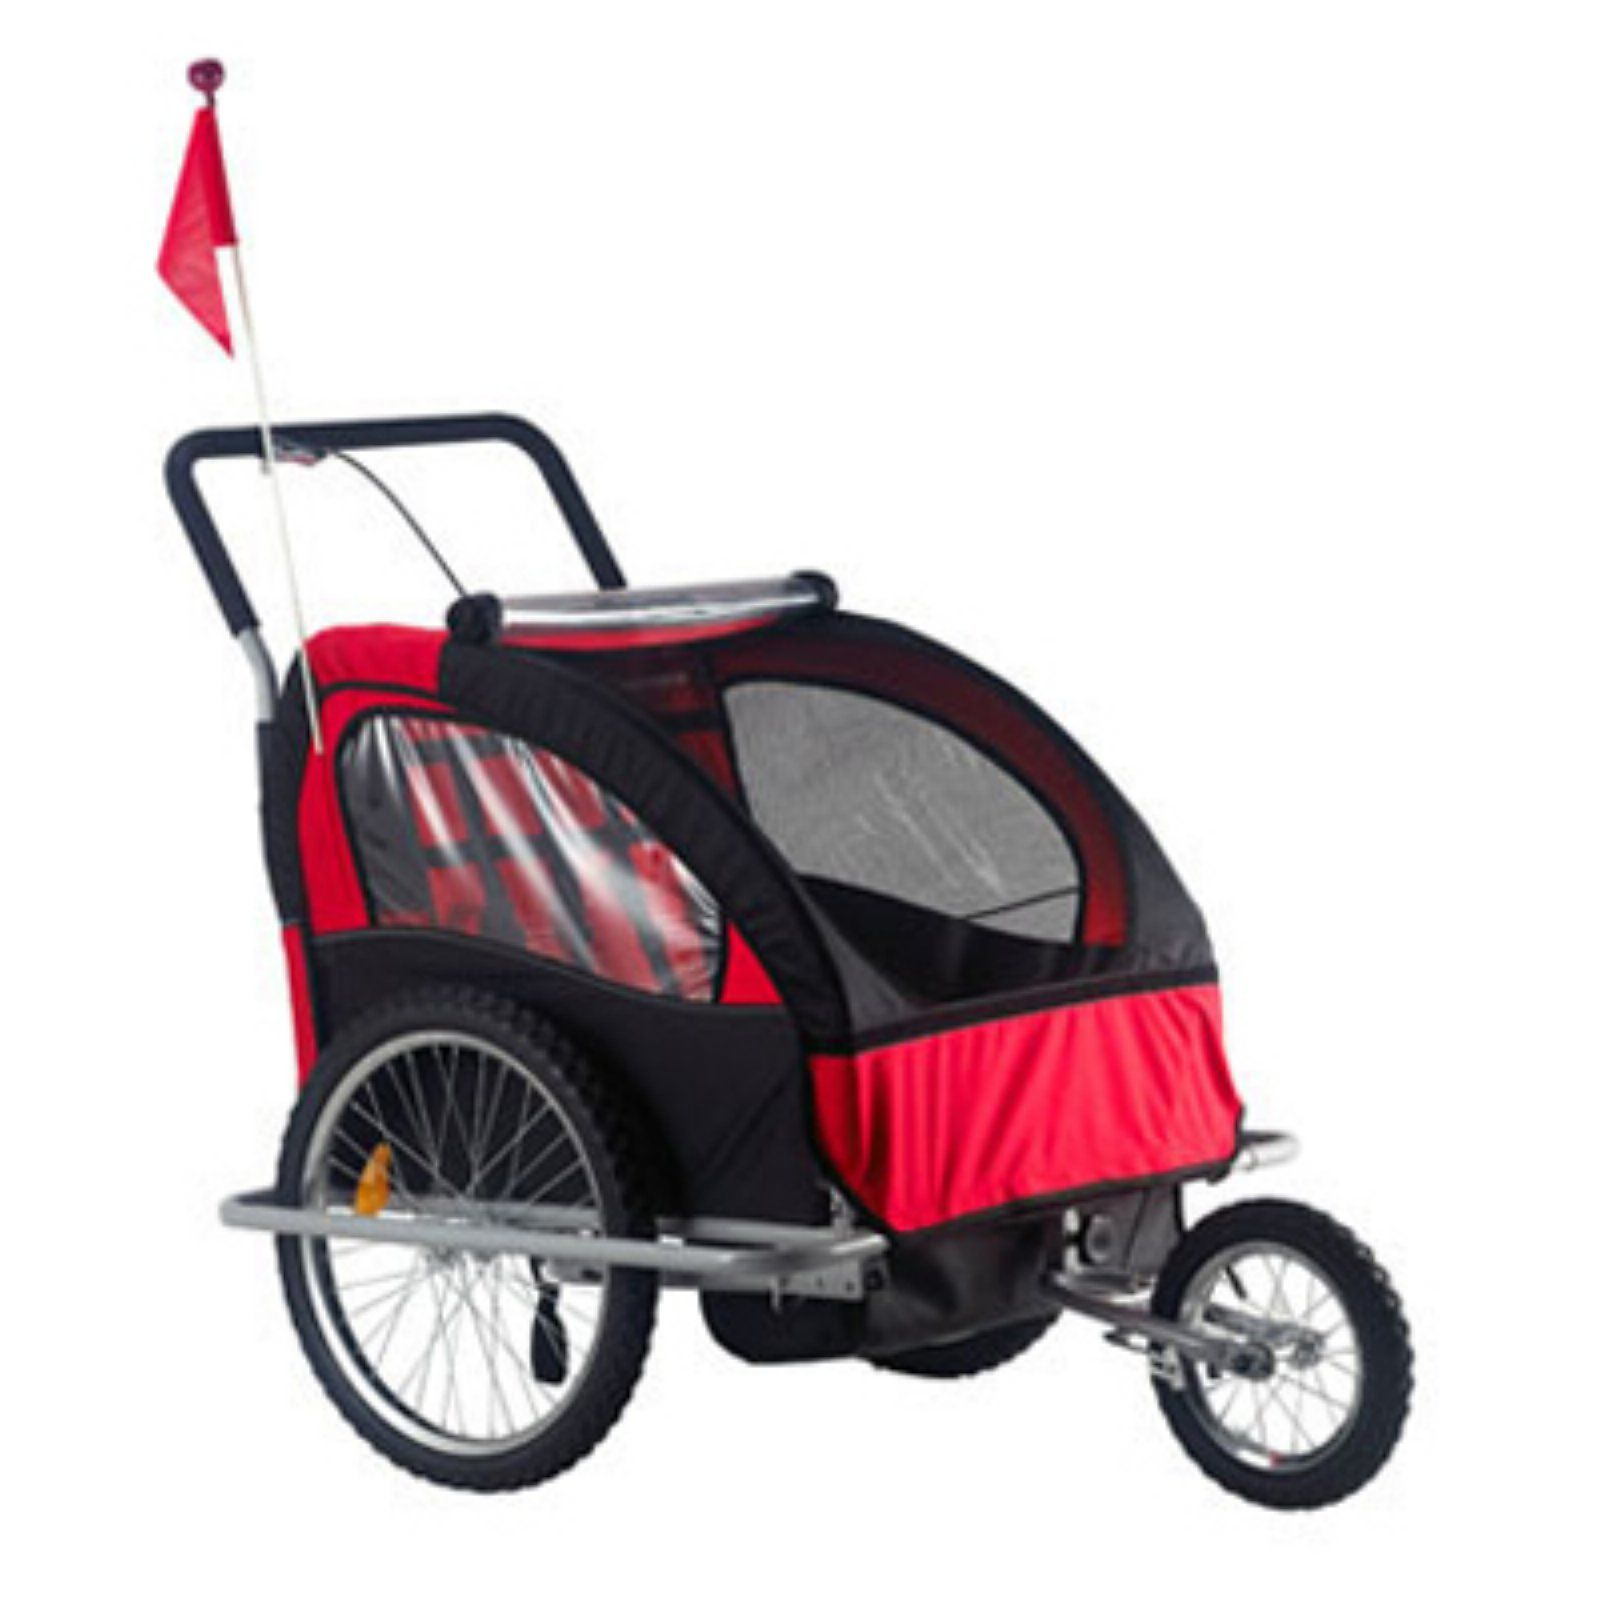 Aosom 2 in 1 Child Bike Trailer and Stroller Red Child